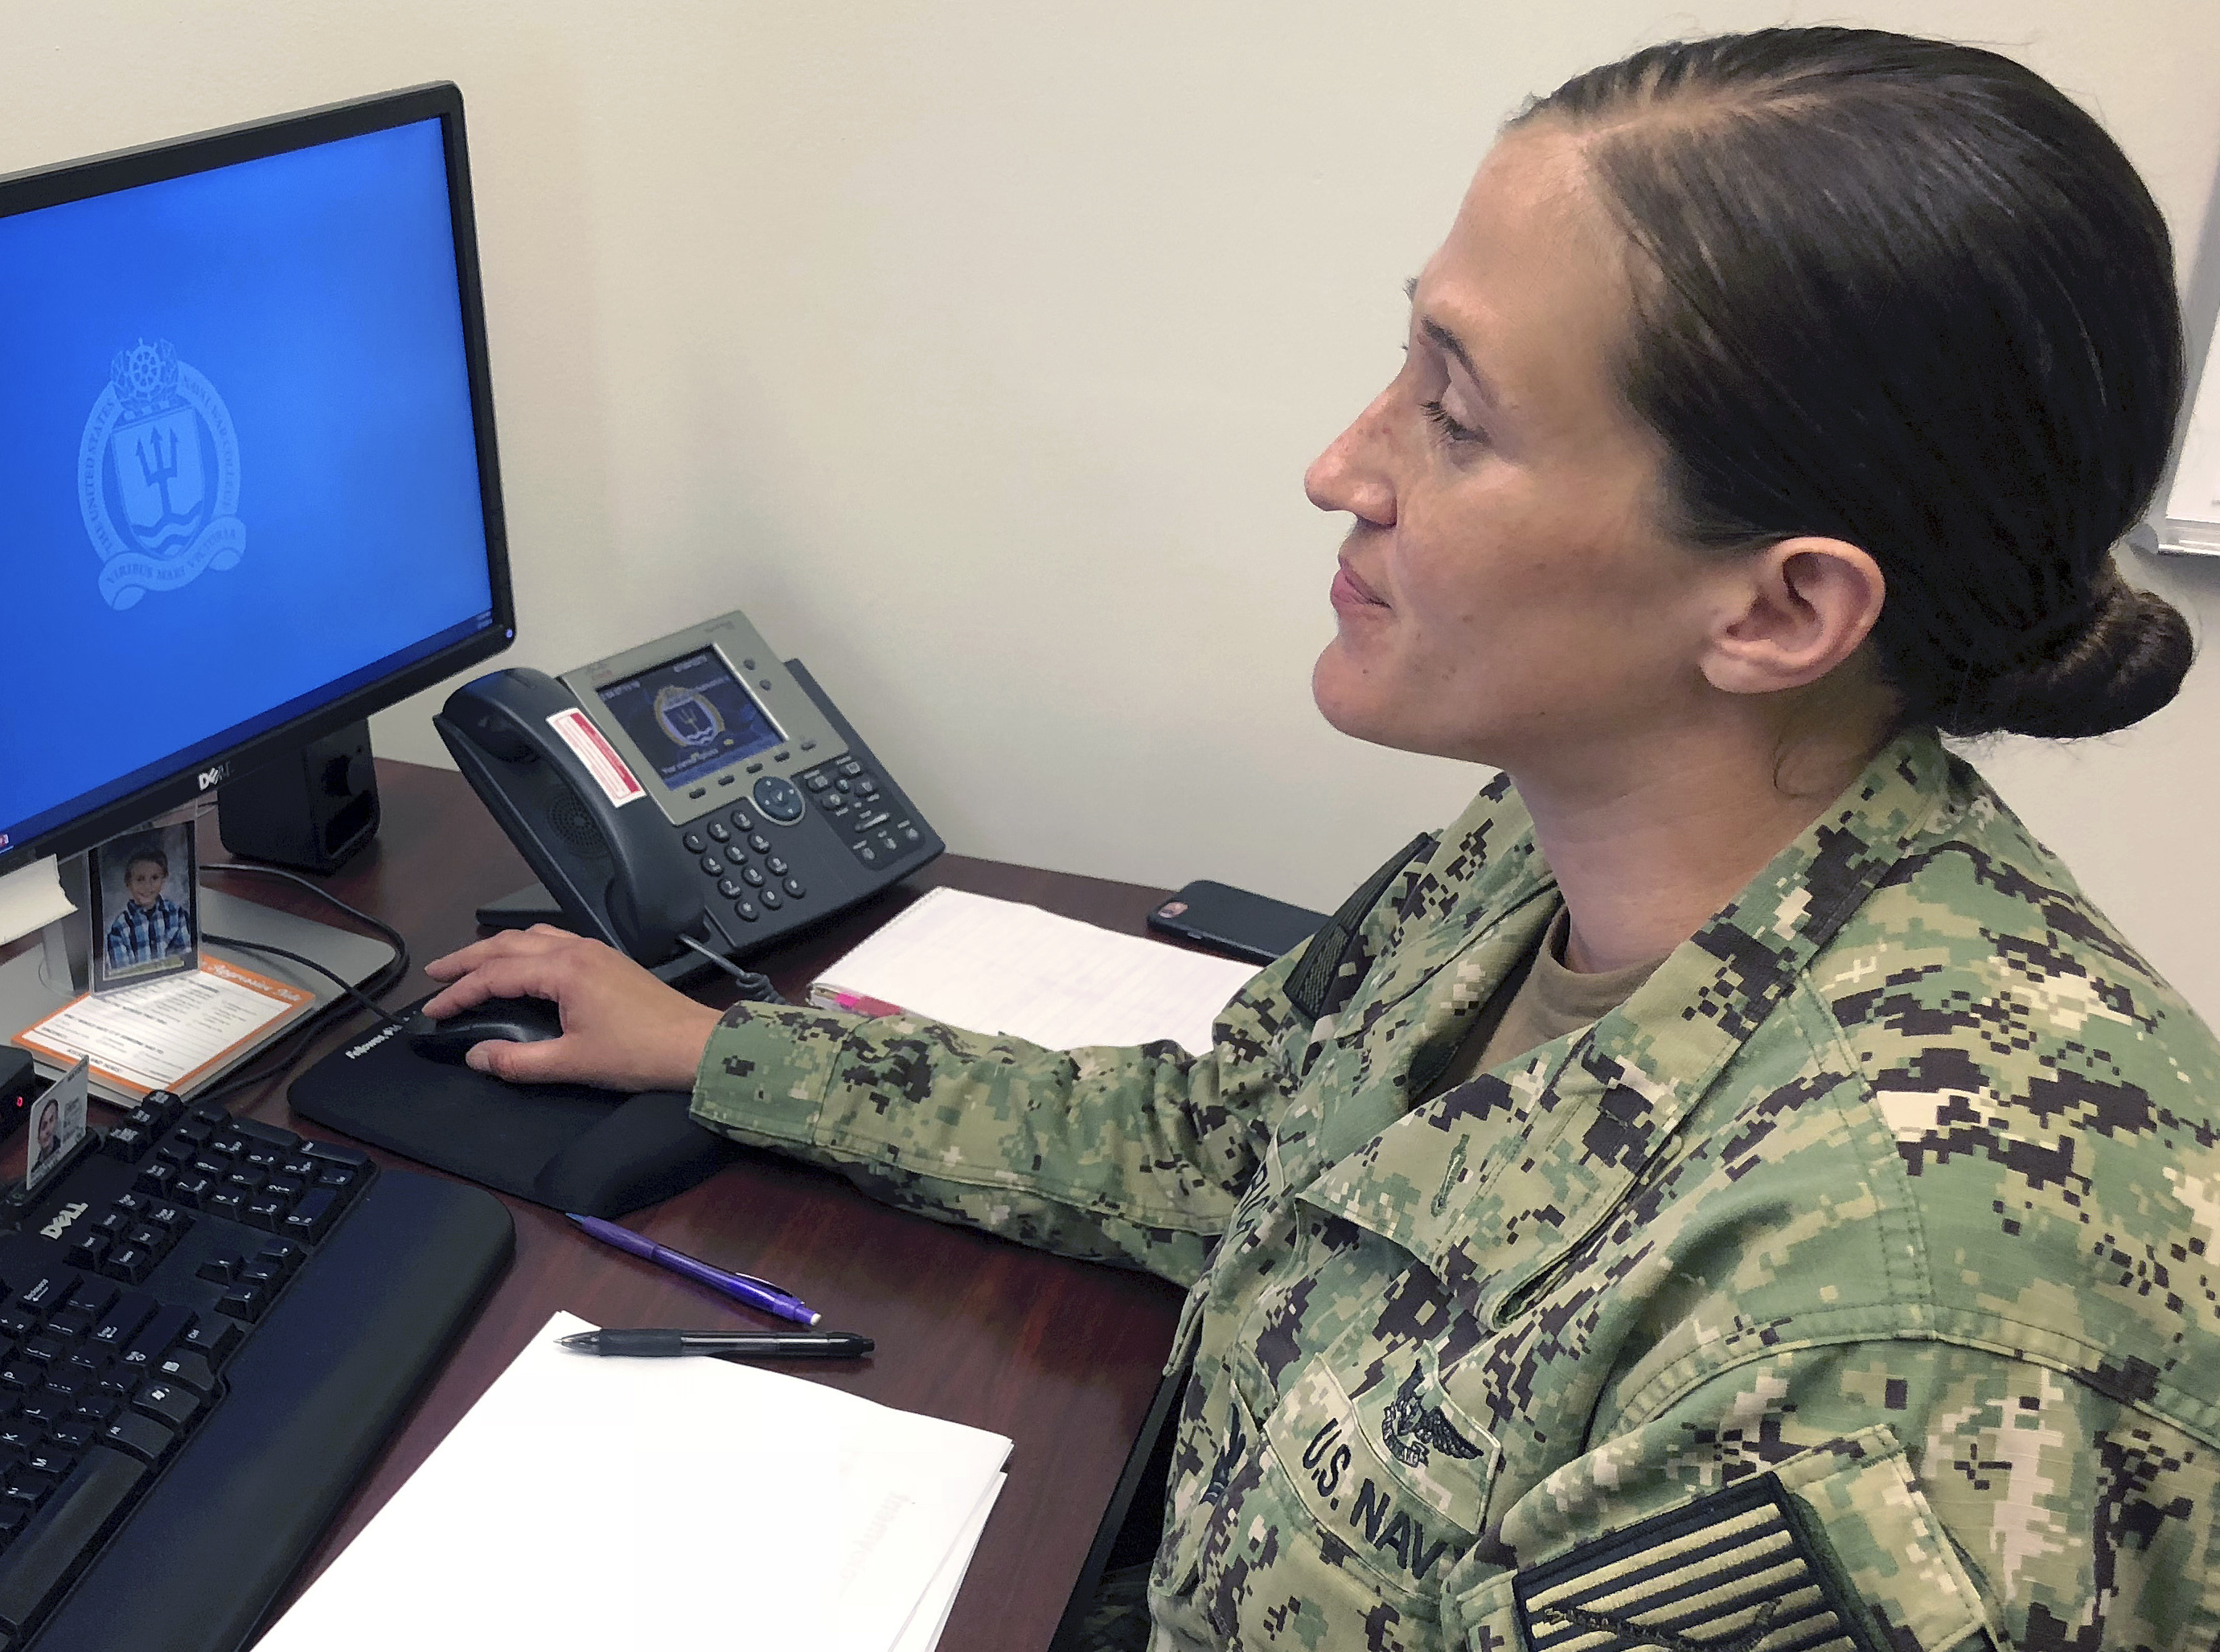 U.S. Navy Legalman First Class Tamatha Schulmerich works at her desk at the Naval War College, July 11, 2018, in Newport, R.I.